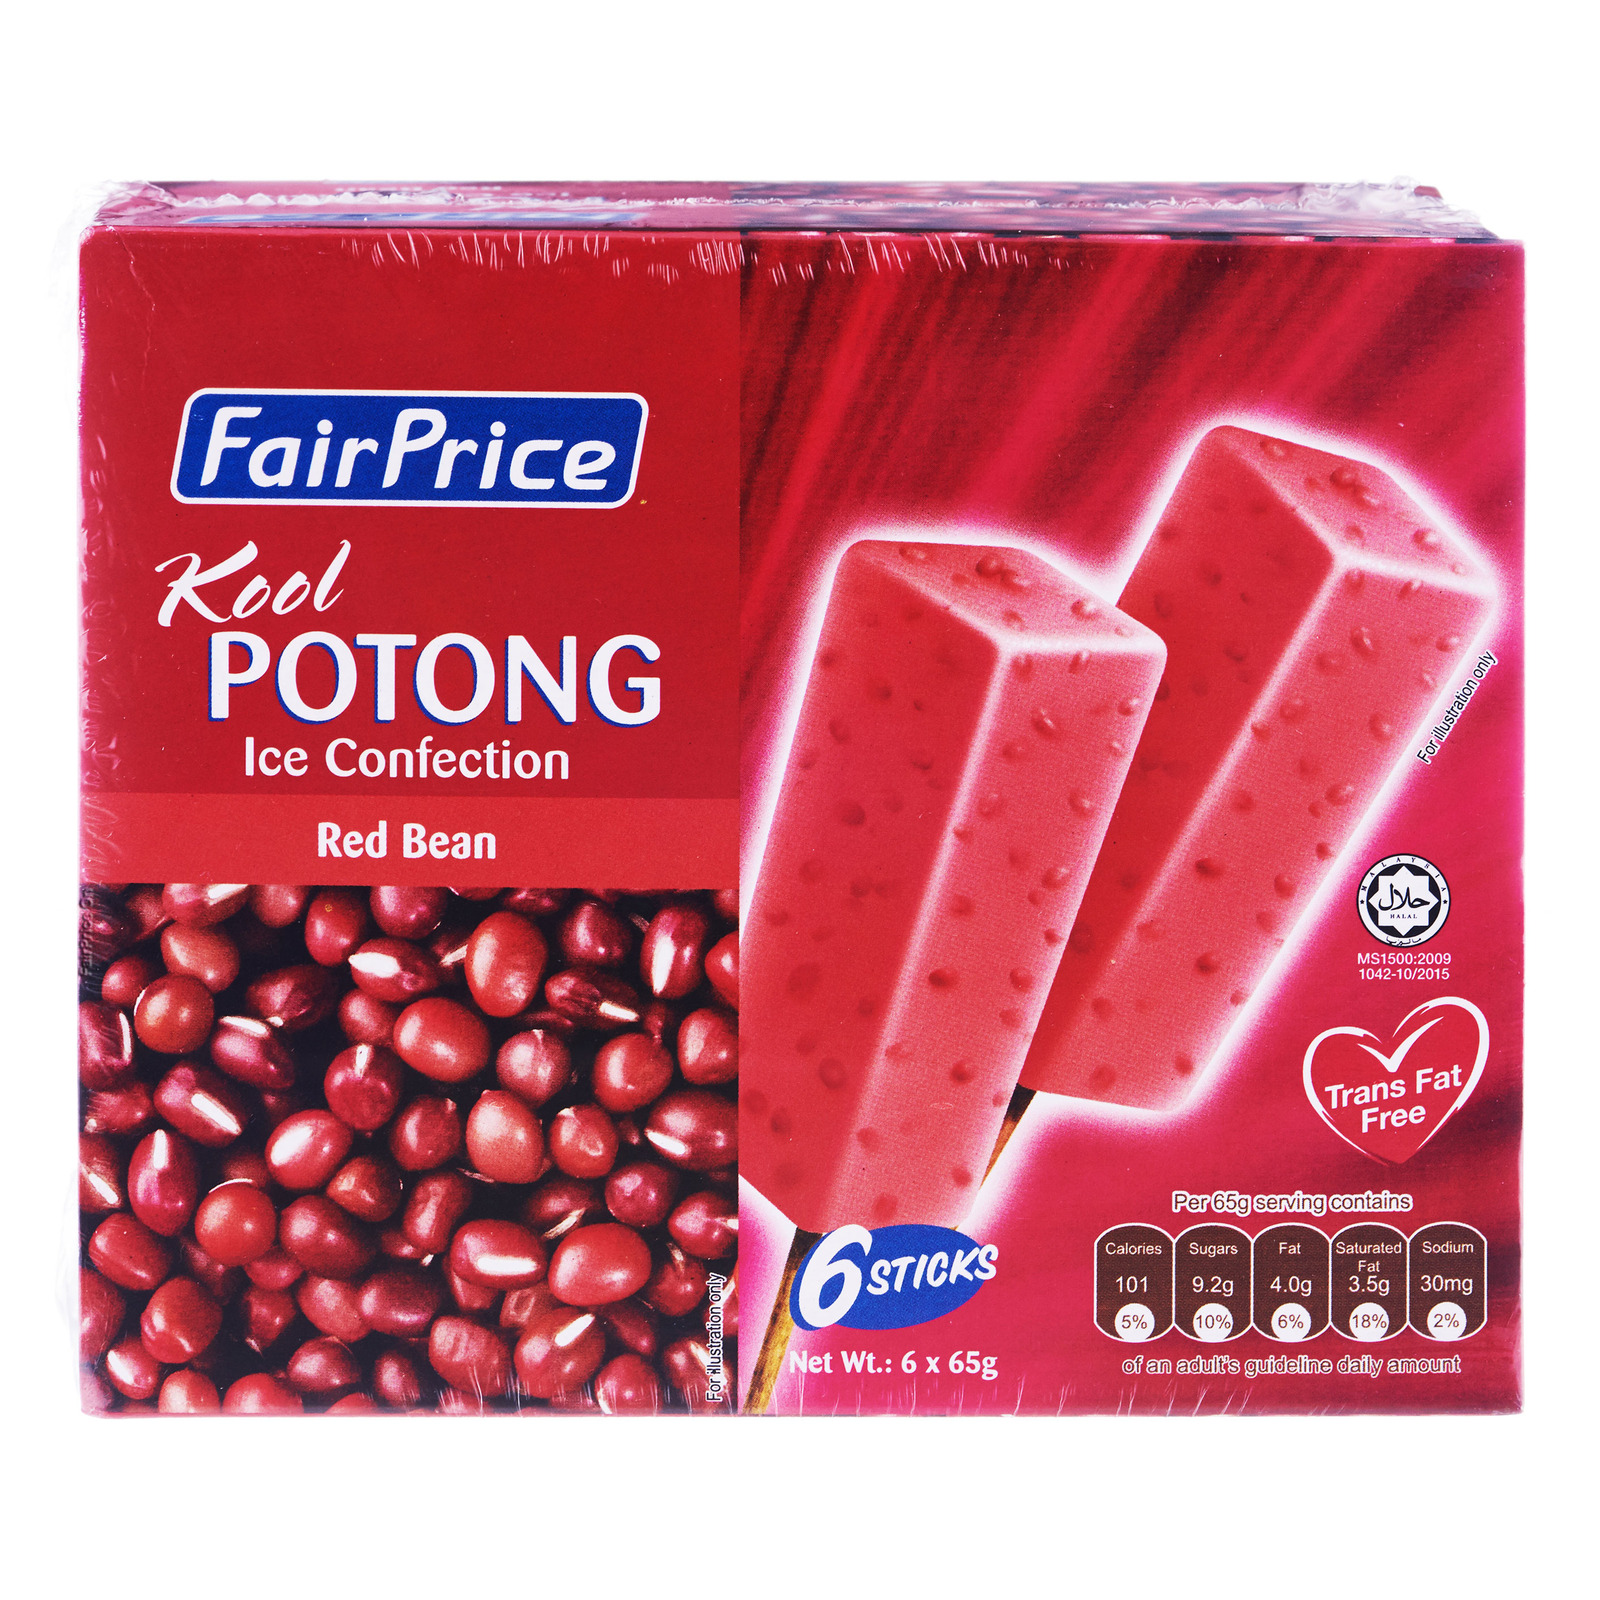 FairPrice Kool Potong Ice Cream - Red Bean